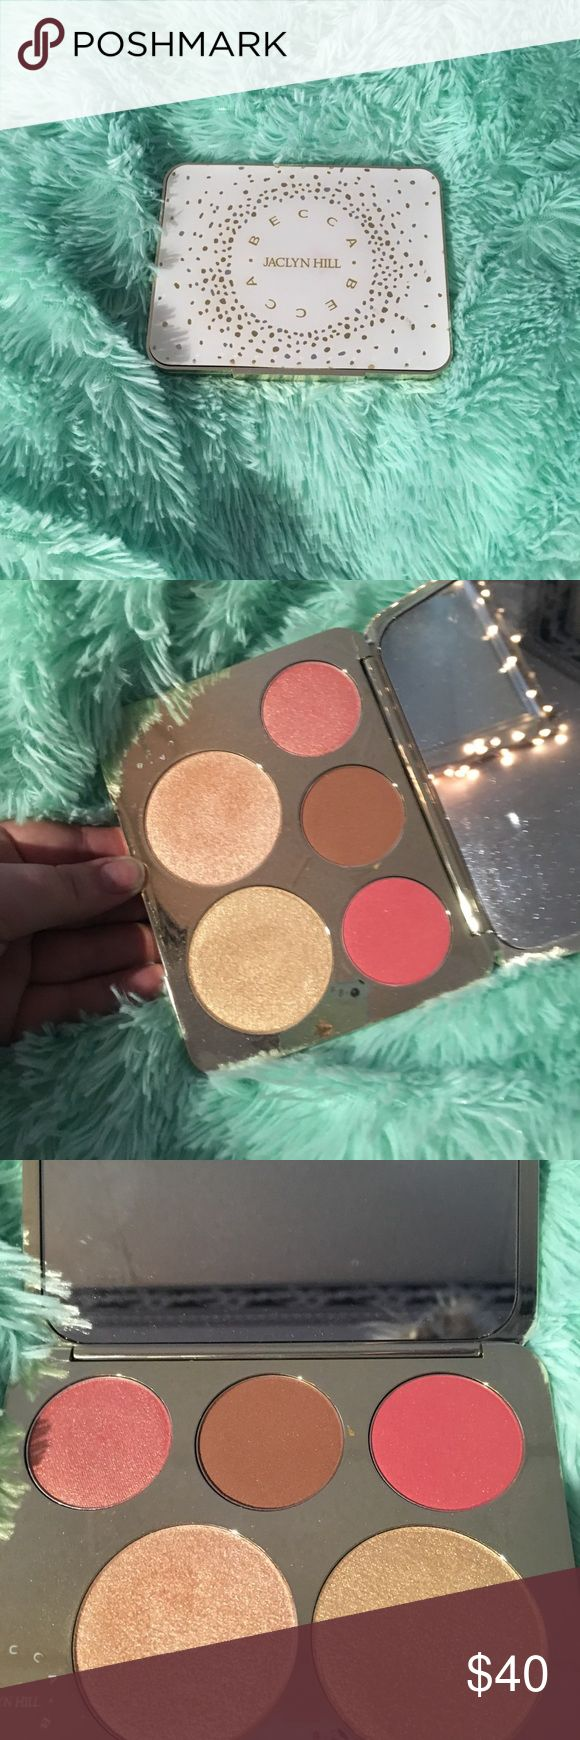 Limited edition Jaclyn hill highlight palette Limited edition Jaclyn hill Becca highlight and blush palette. Used one time. I have another so don't need two. Heat has caused cracks. But still closes and perfectly fine. BECCA Makeup Luminizer